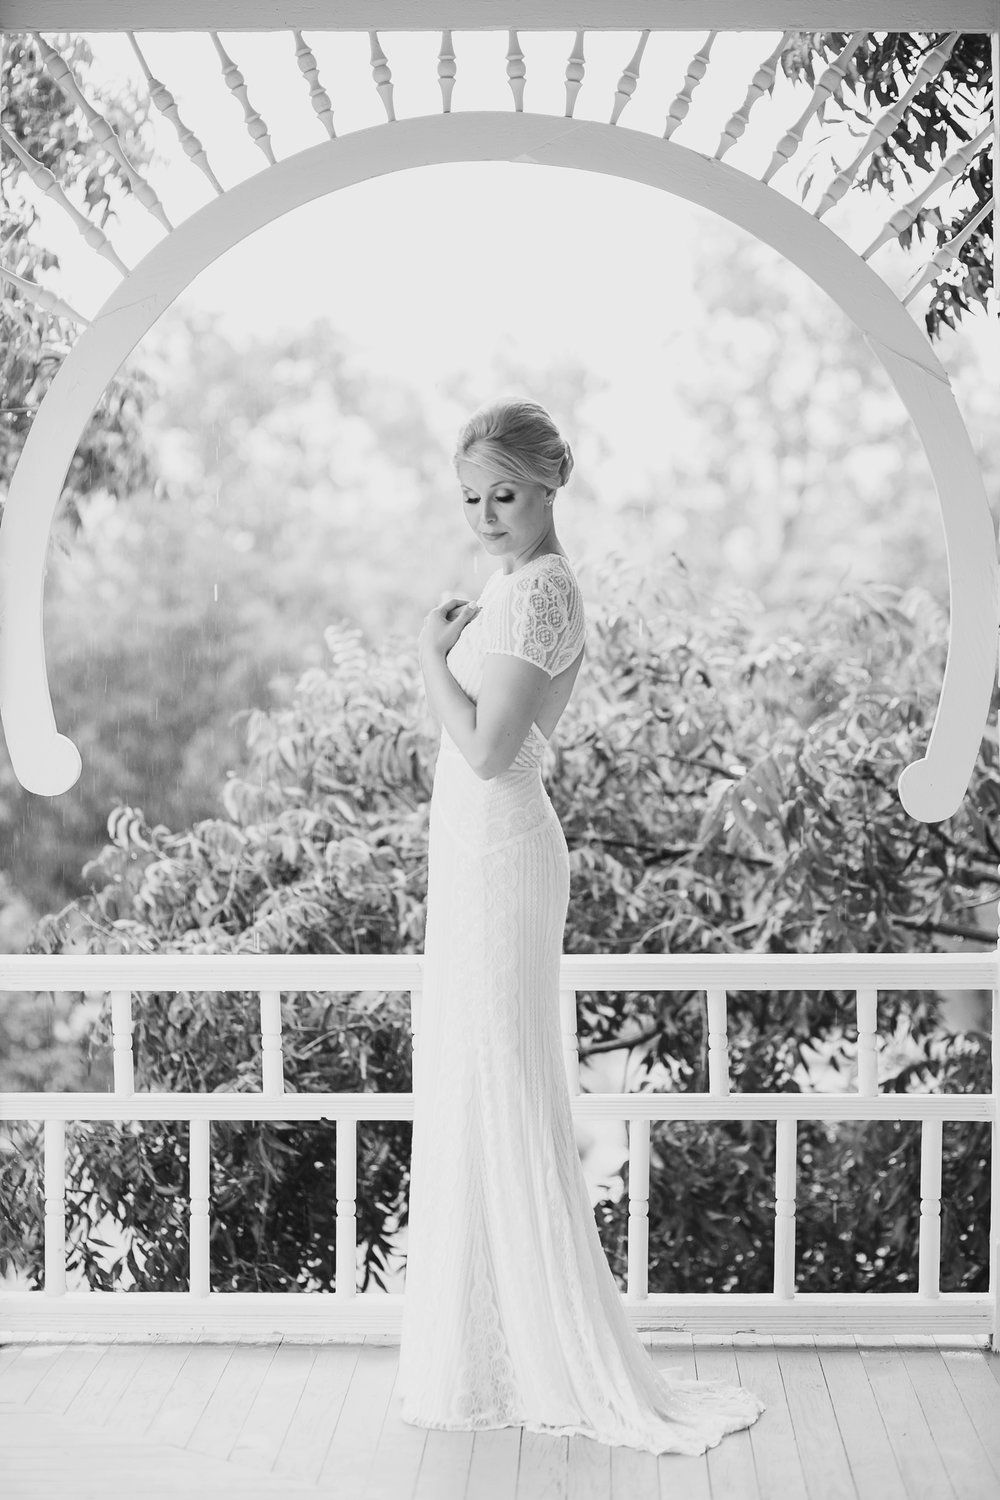 Austin_Wedding_Photographer_Kimberly_Brooke_Photographic_179.jpg